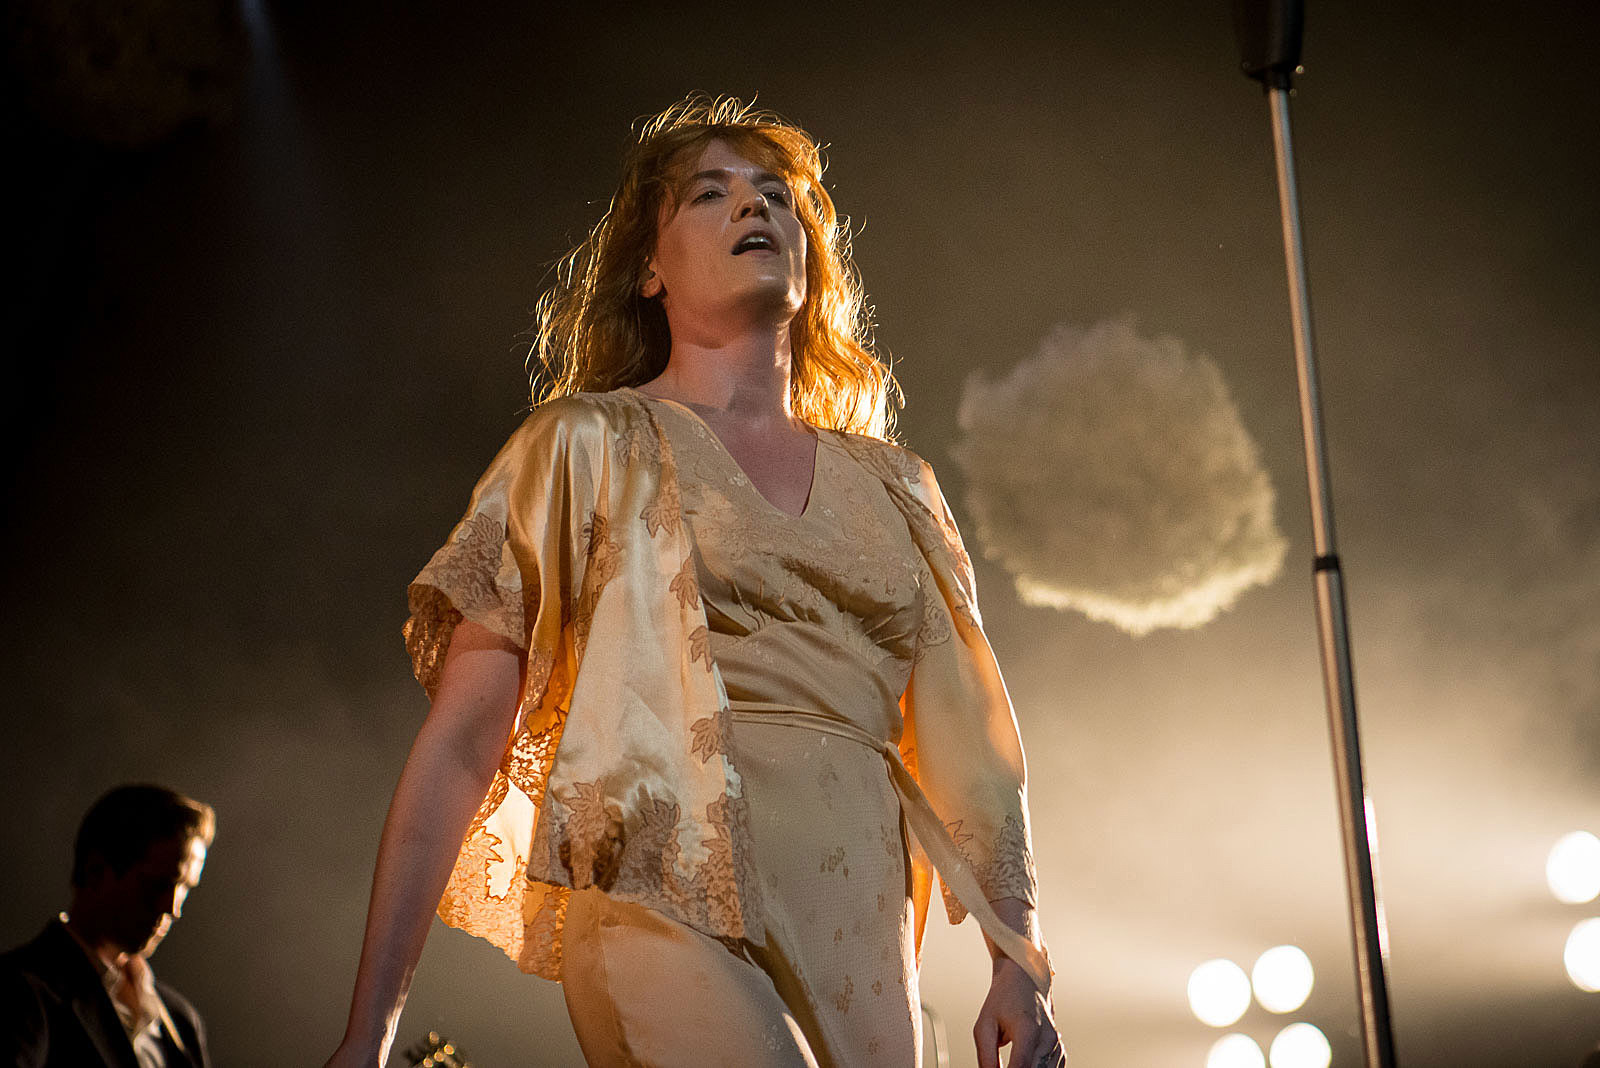 Florence + The Machine at Brooklyn Academy of Music